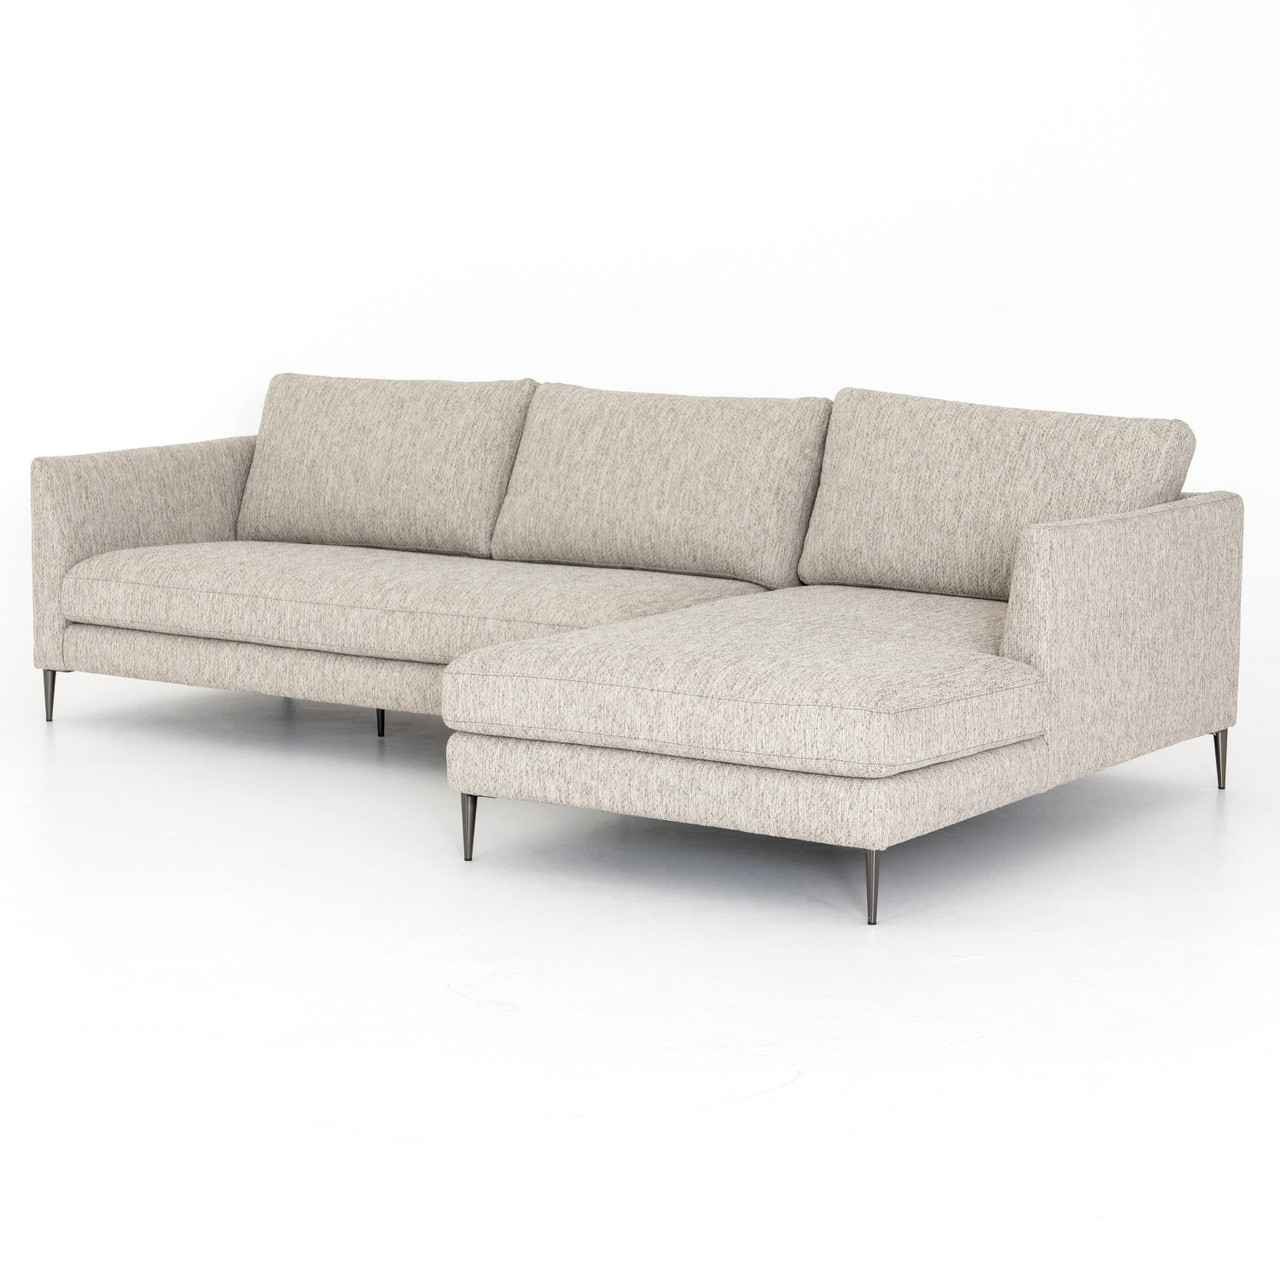 Made Sofa Reviews Kailor Modern Neutral Sectional Sofa With Right Chaise